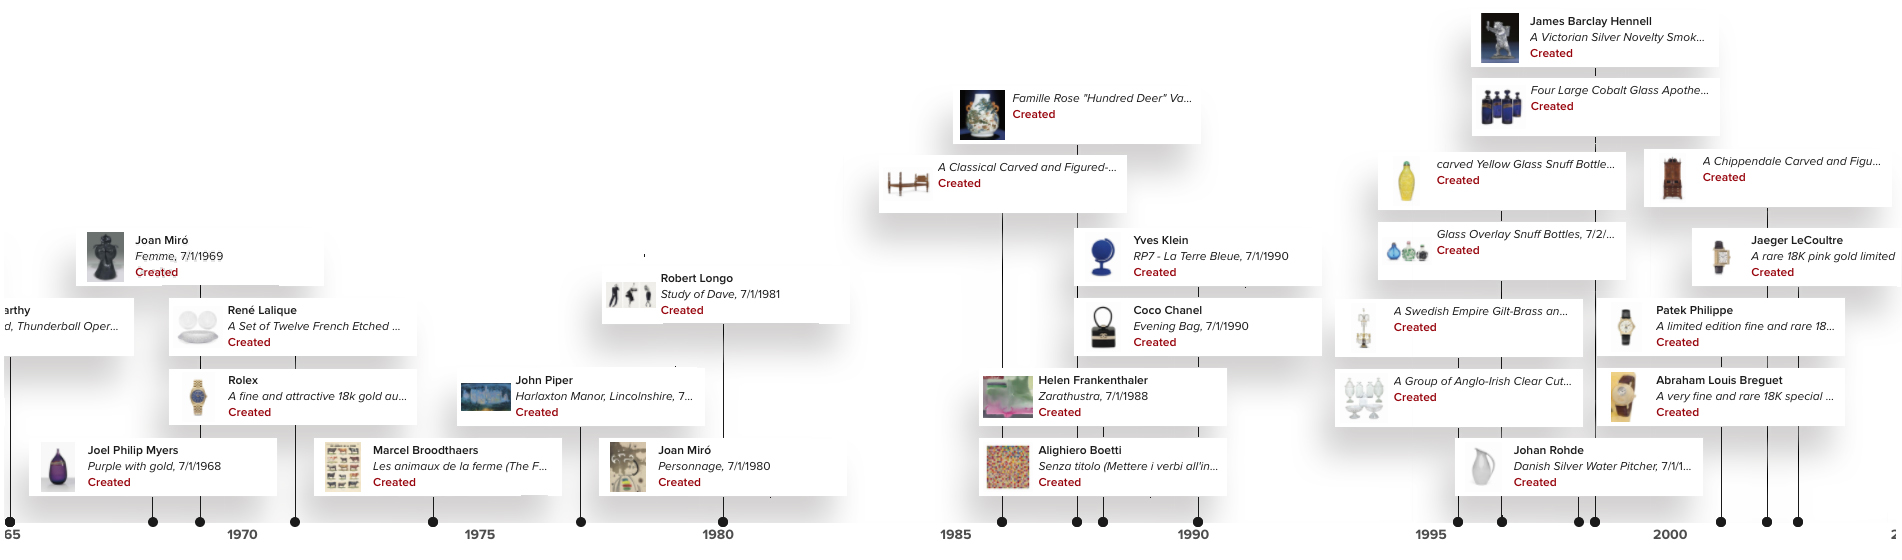 collection history timeline.jpg